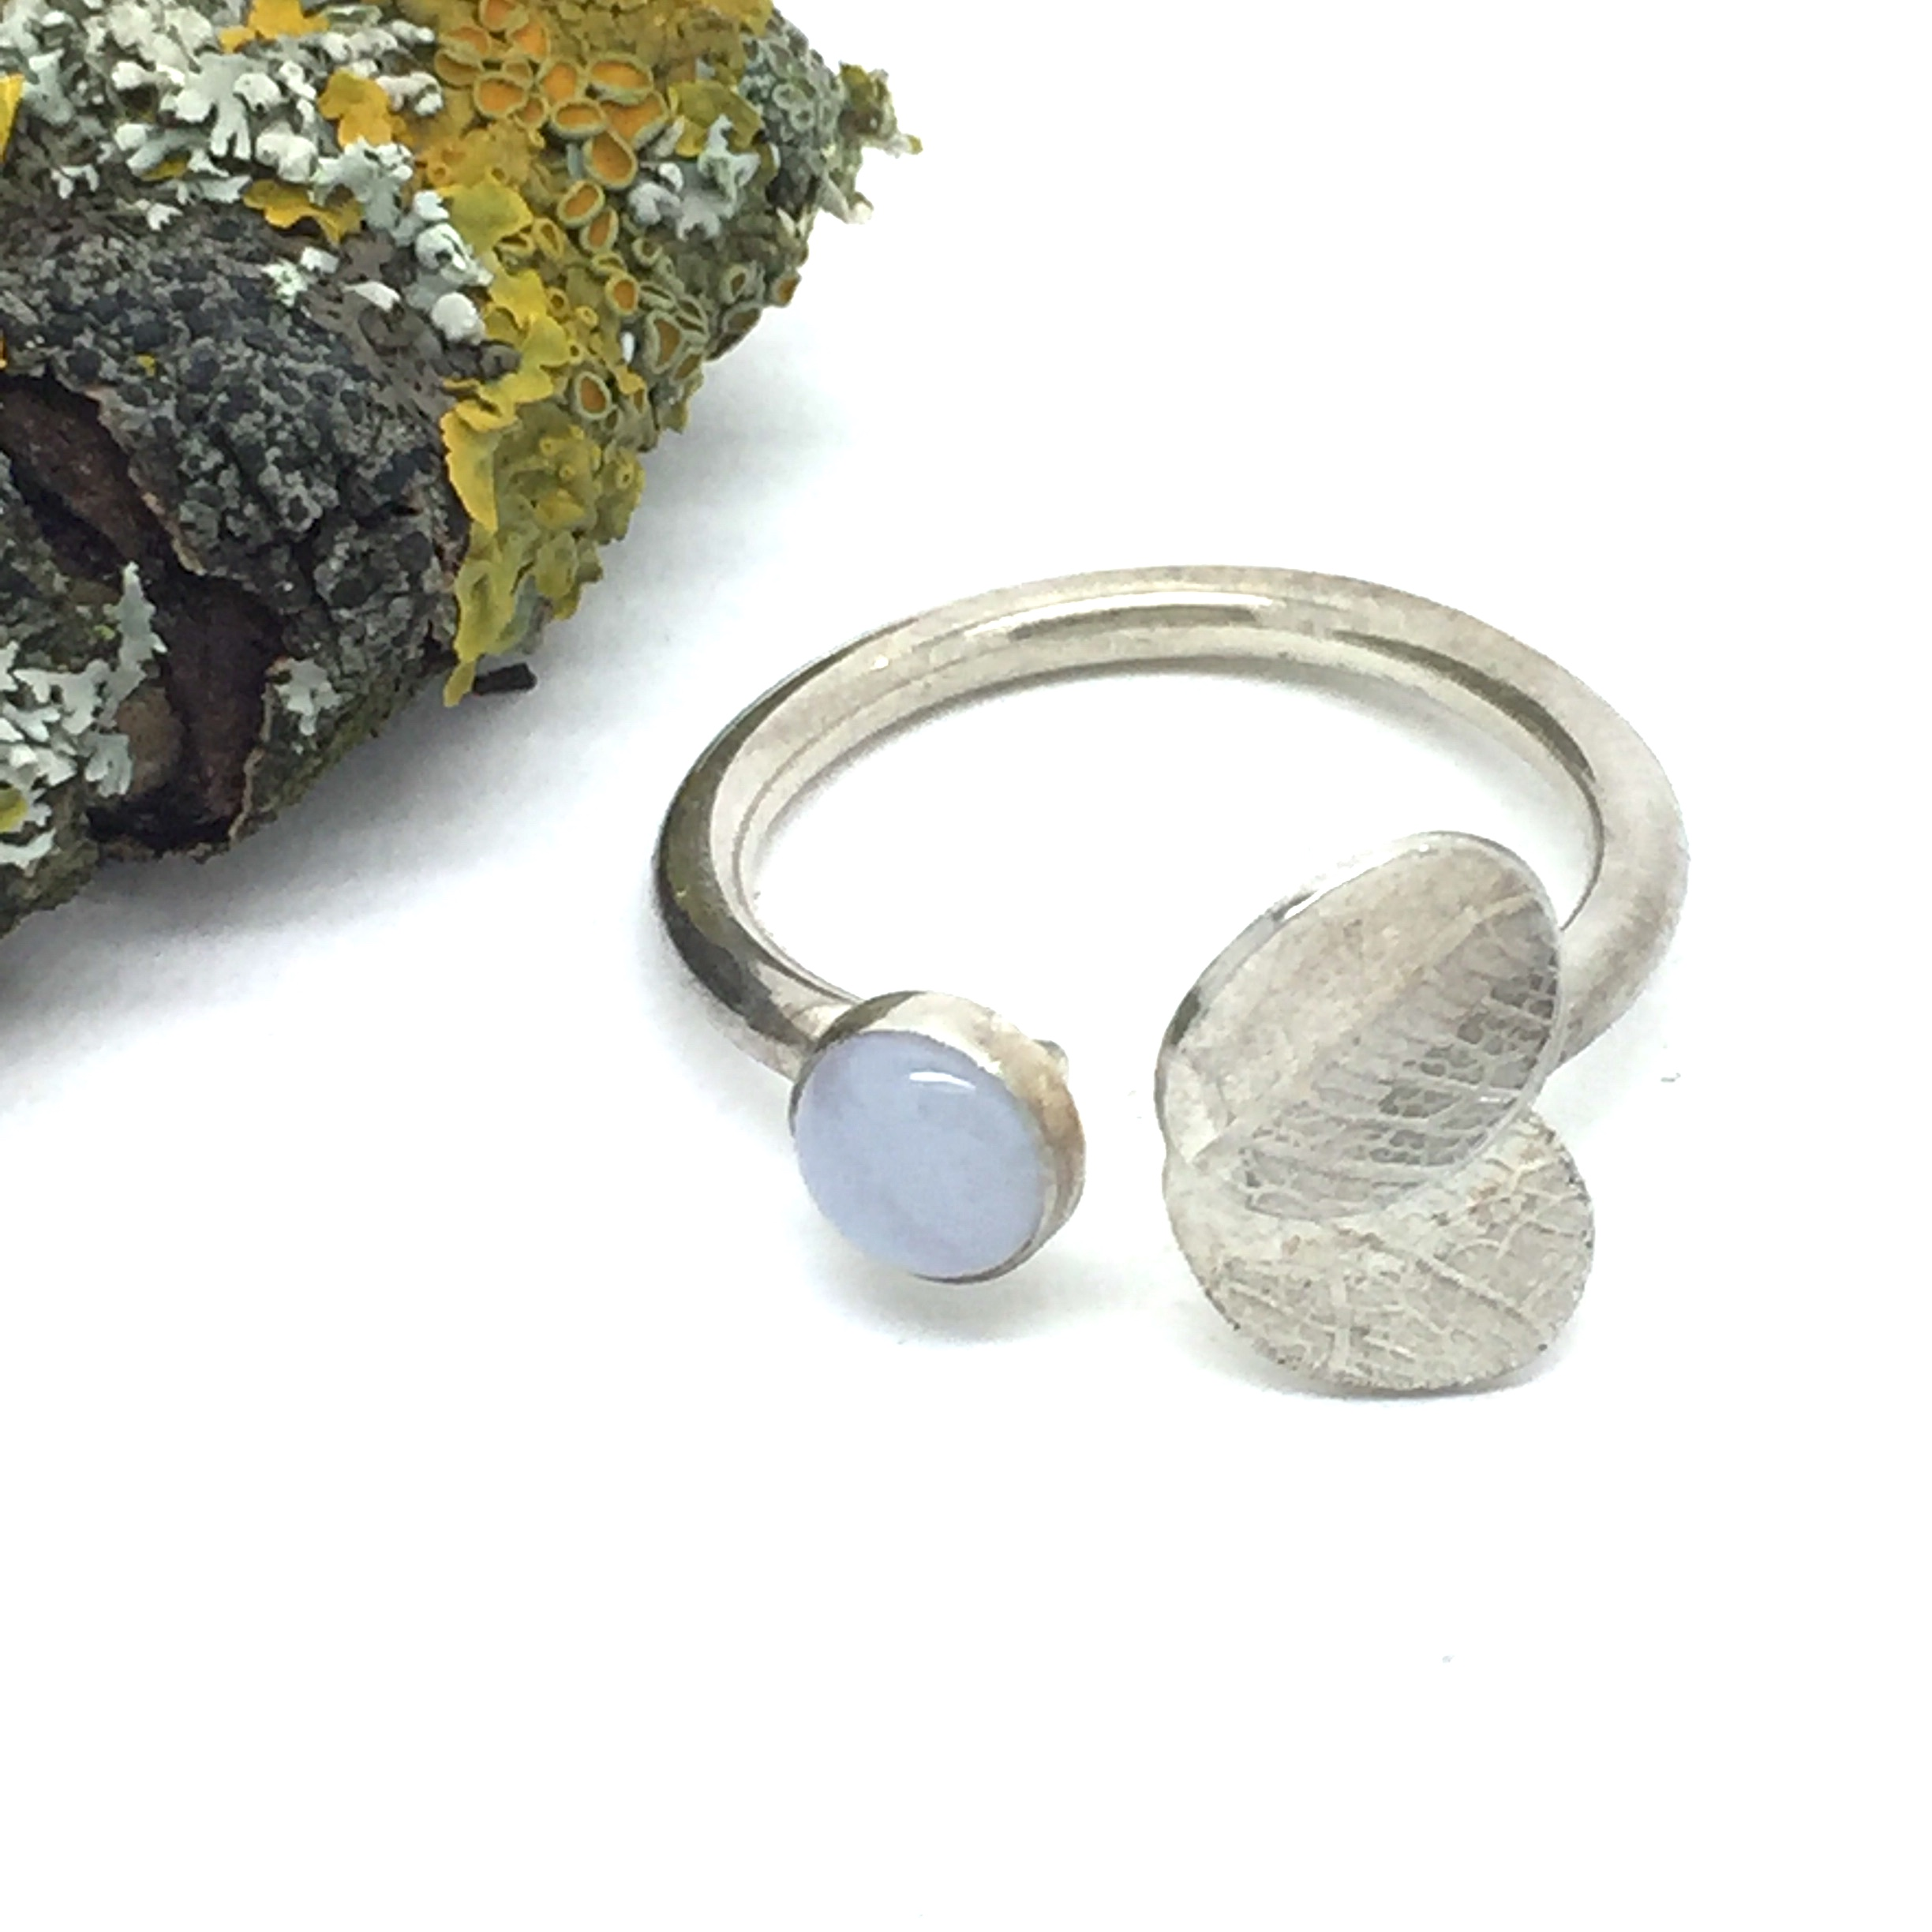 stone set adjustable Ring  Create a unique ring that is adjustable to wear on different fingers. Or a good opTion if making a gift for someone and your not sure of their ring size.  Explore texture on metal soldering techniques forming a ring and the fundamentals of setting a cabochon semi precious gem stone.  £95 per person MiniMum 2 Max 5 in class